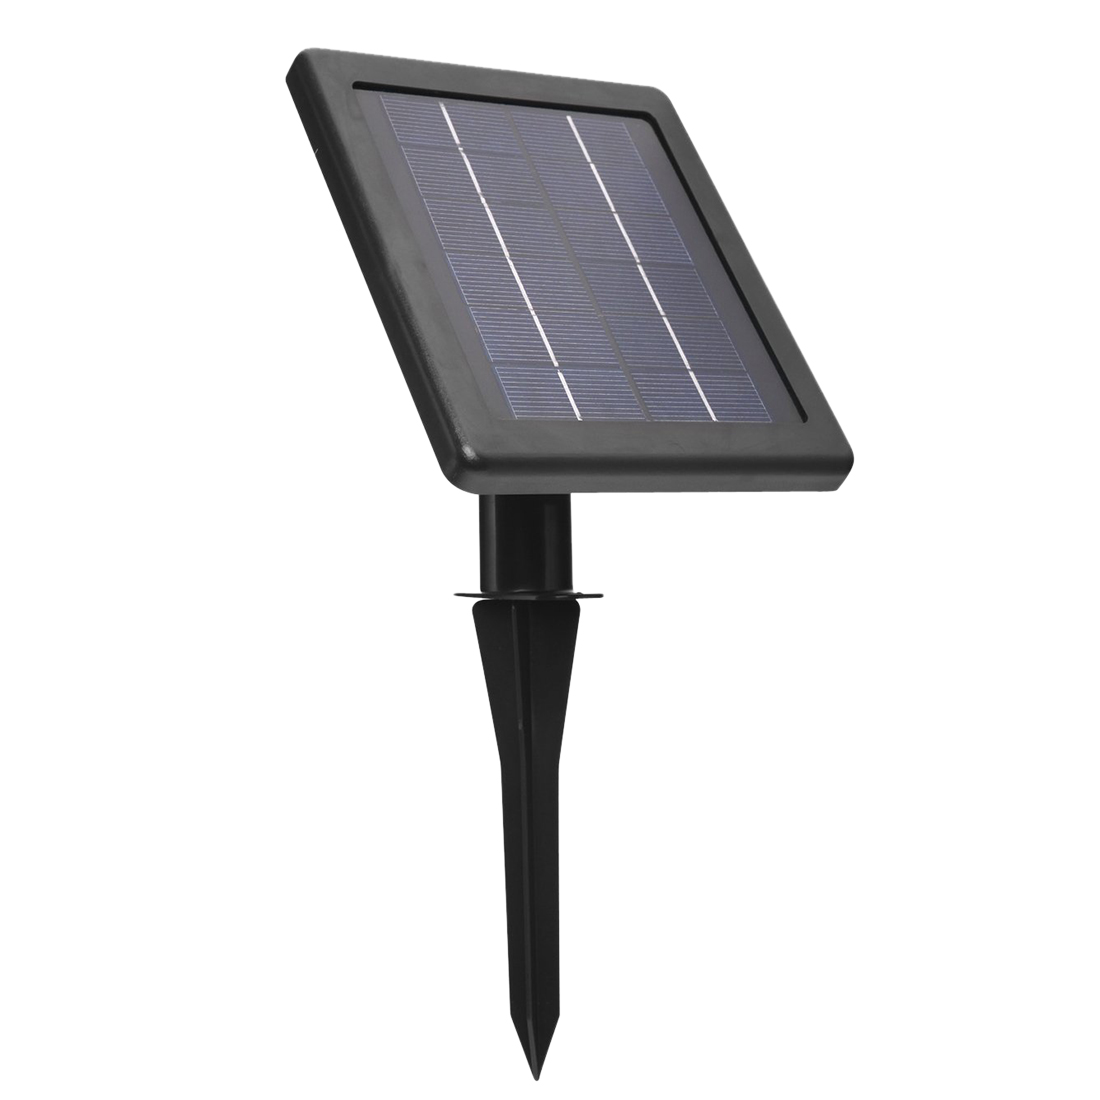 Rechargeable Waterproof Solar Powered 30 LED Spot Light White Lamp with Lithium Battery Inside for Lawn, Garden, Hotel, etc. solar powered self recharged led white light lawn lamp 1 aa